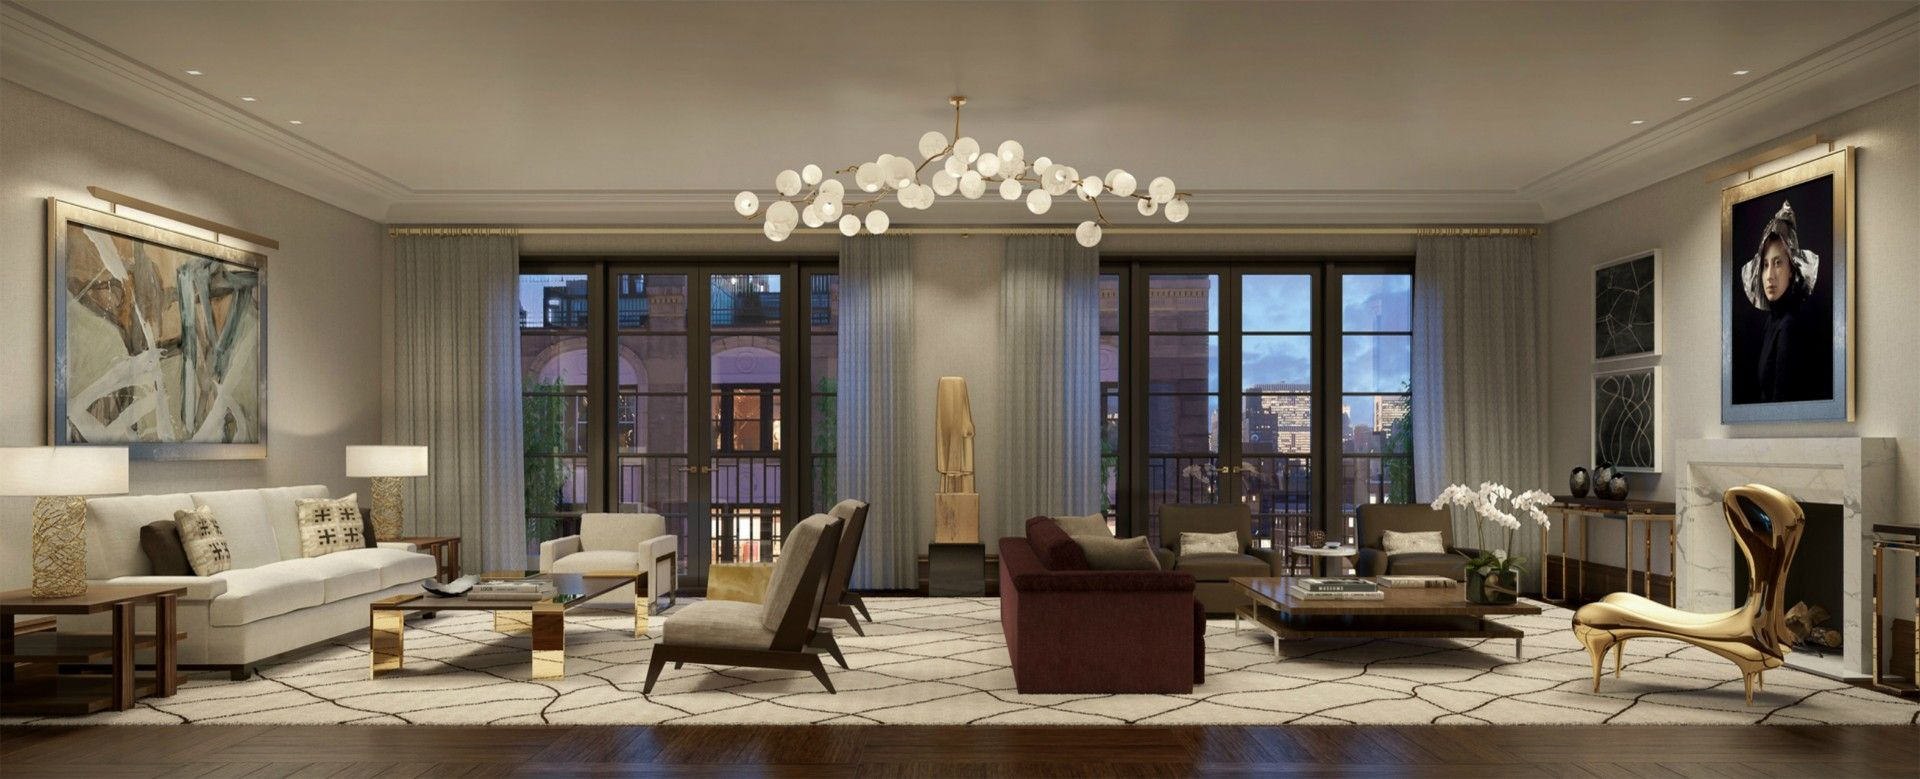 Pembrooke & Ives is a New York interior design firm that ...